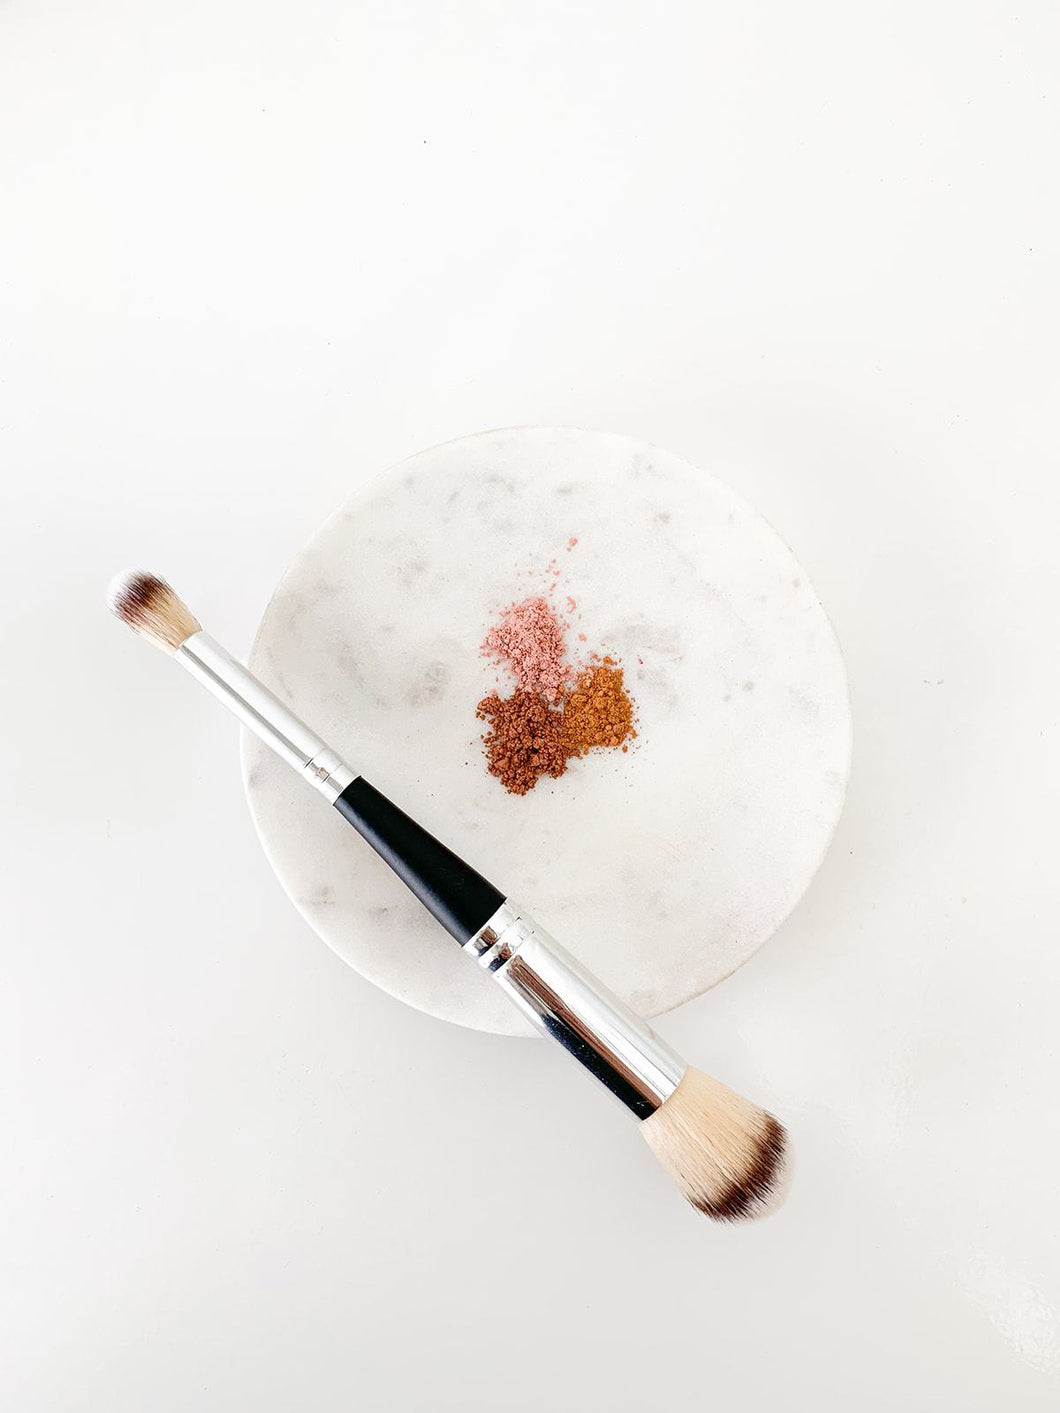 Nook & Cranny Brush for Mineral Powder